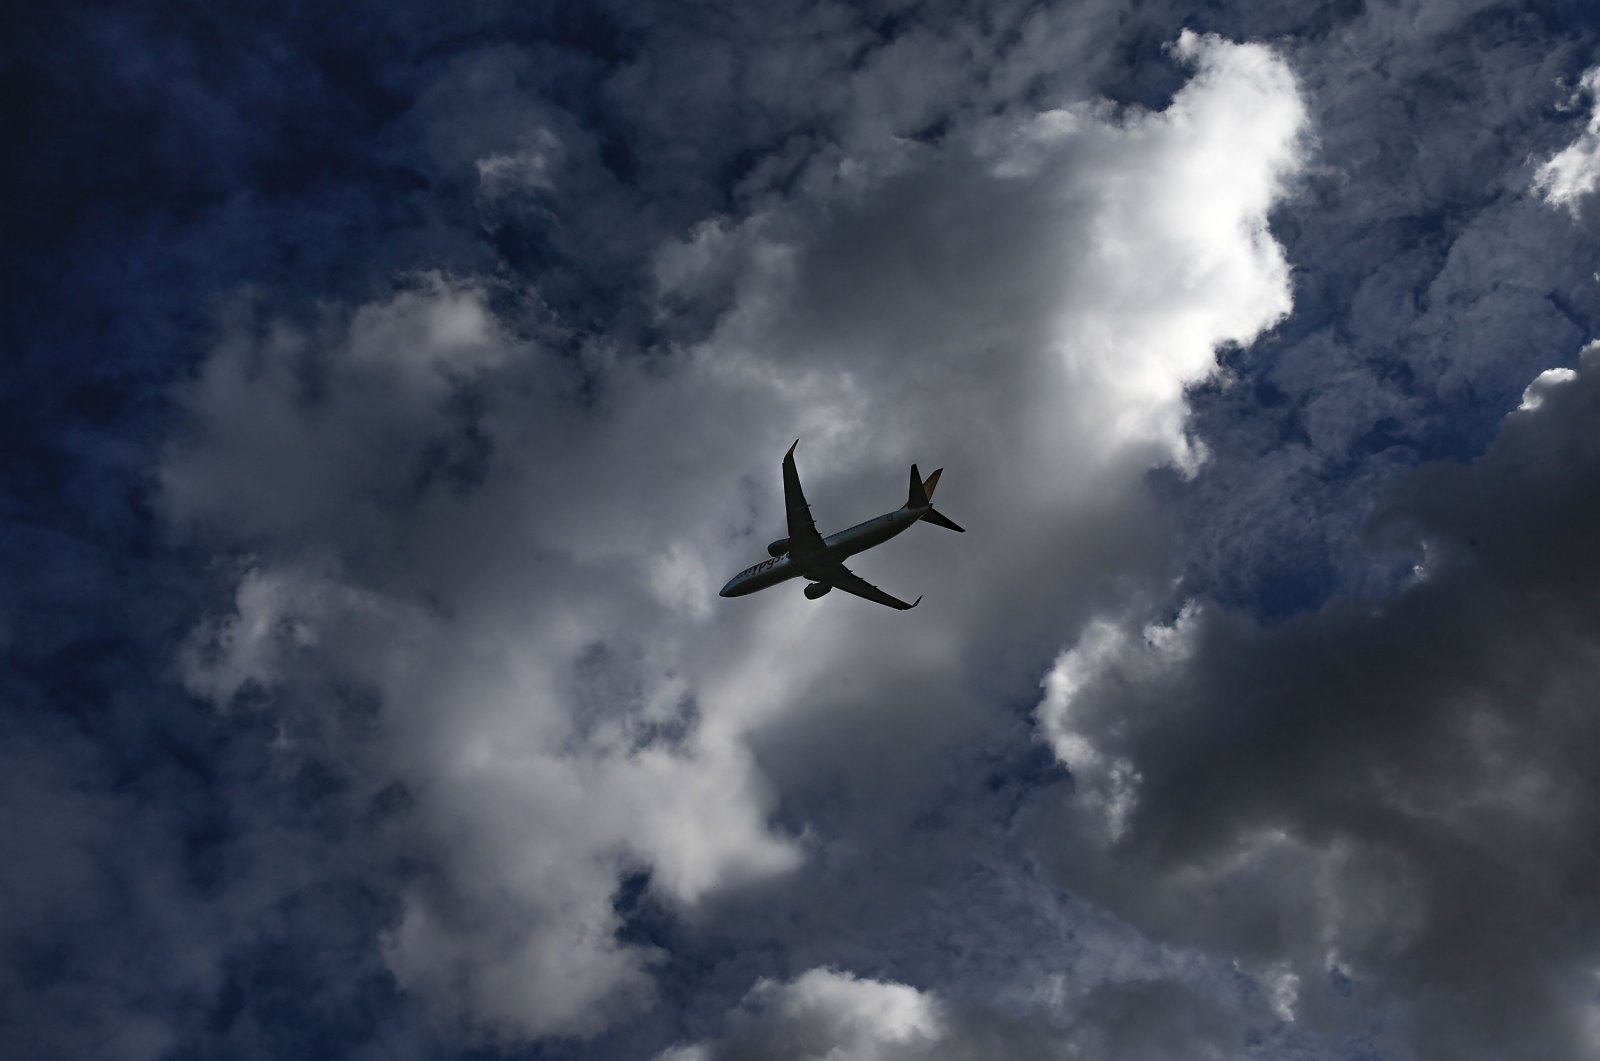 A passenger plane descends to land at Istanbul's Sabiha Gokcen Airport, in Istanbul, Friday, Feb. 7, 2020. (AP Photo)